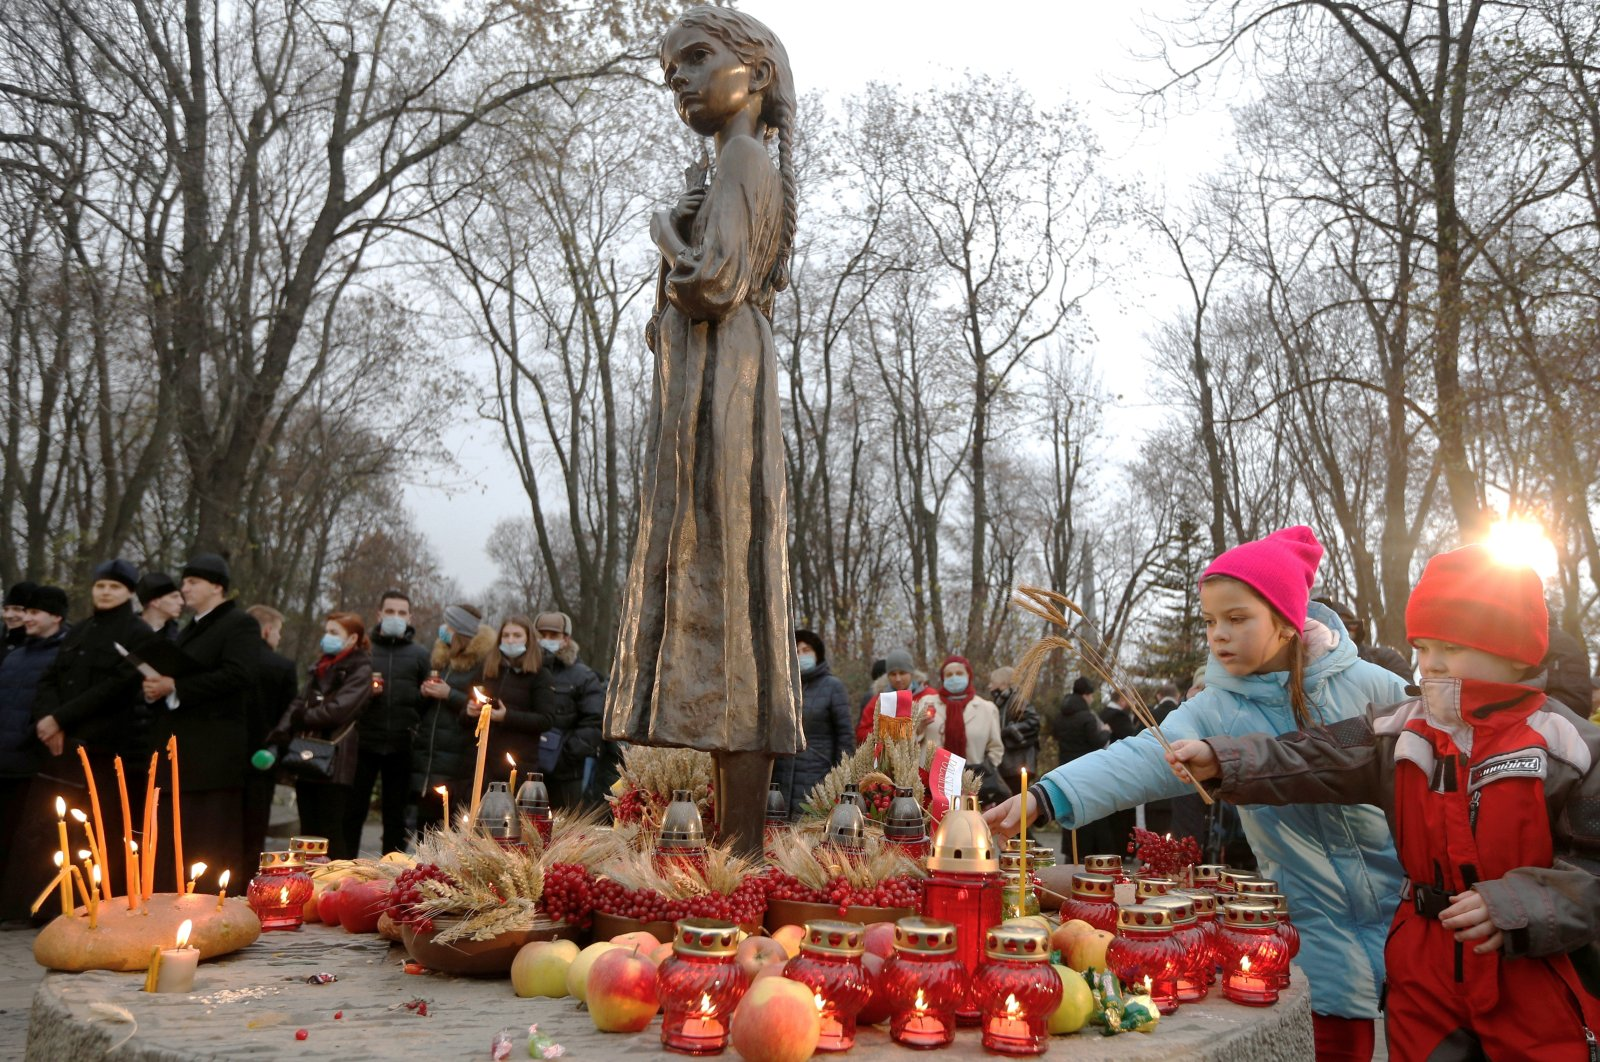 People visit a monument to Holodomor victims during a commemoration ceremony marking the 87th anniversary of the famine of 1932 and 1933, Kyiv, Ukraine, Nov. 28, 2020. (Reuters Photo)